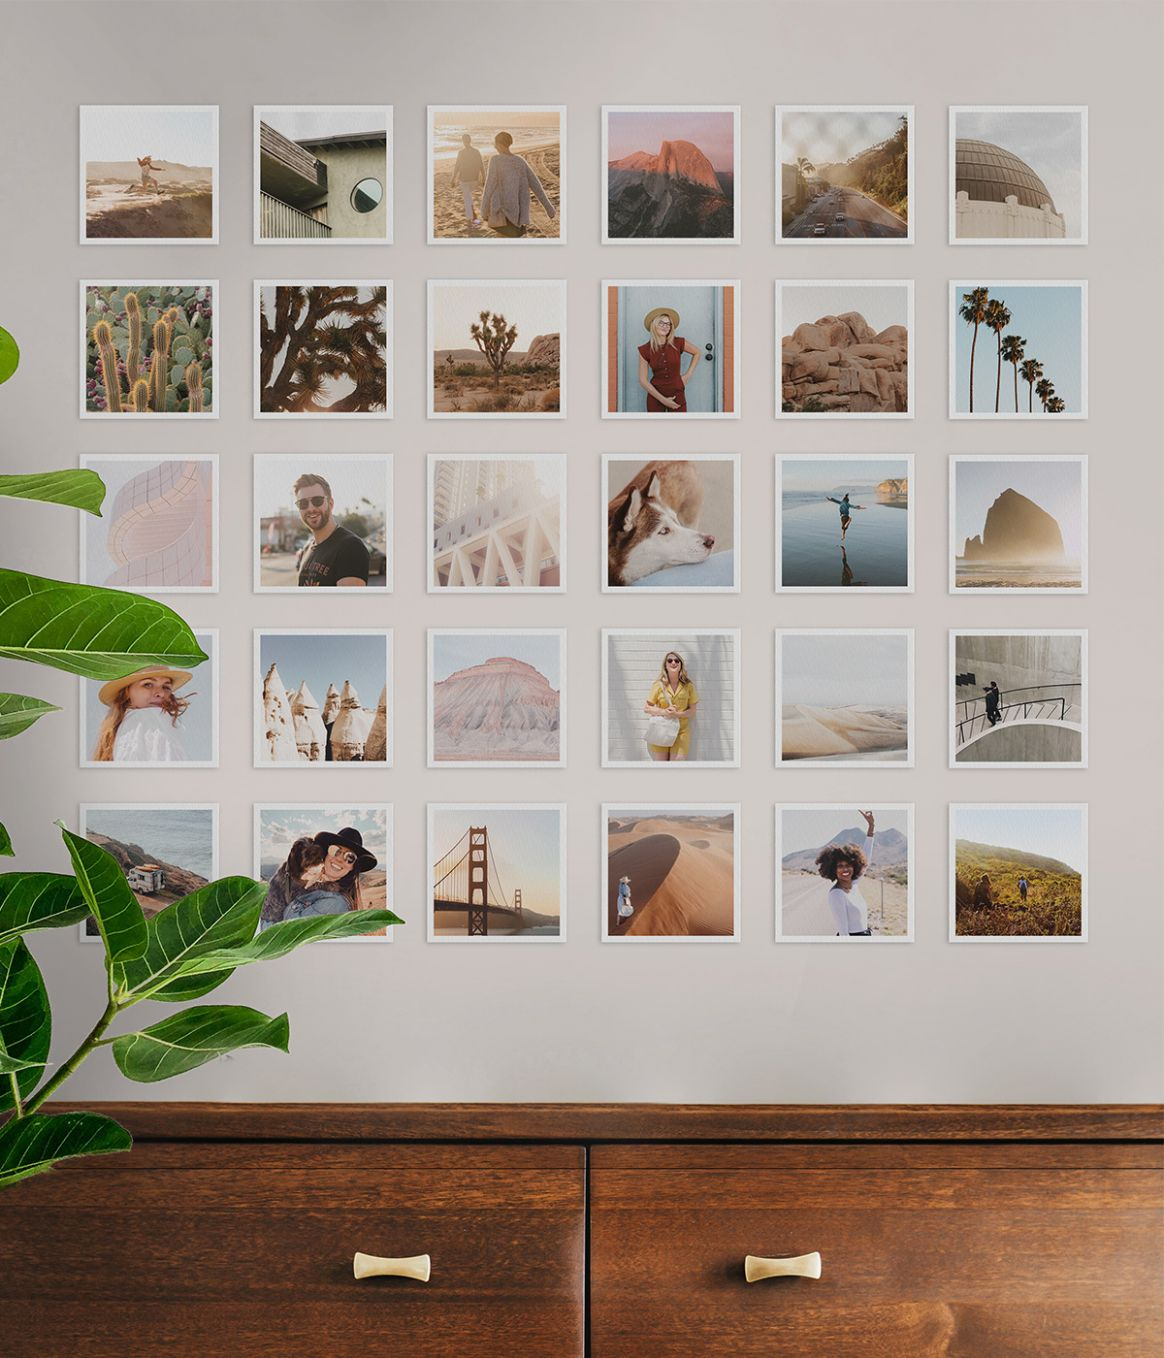 9 Wall Art Ideas to Personalize Your Space | Artifact Uprising - wall decor ideas with frames